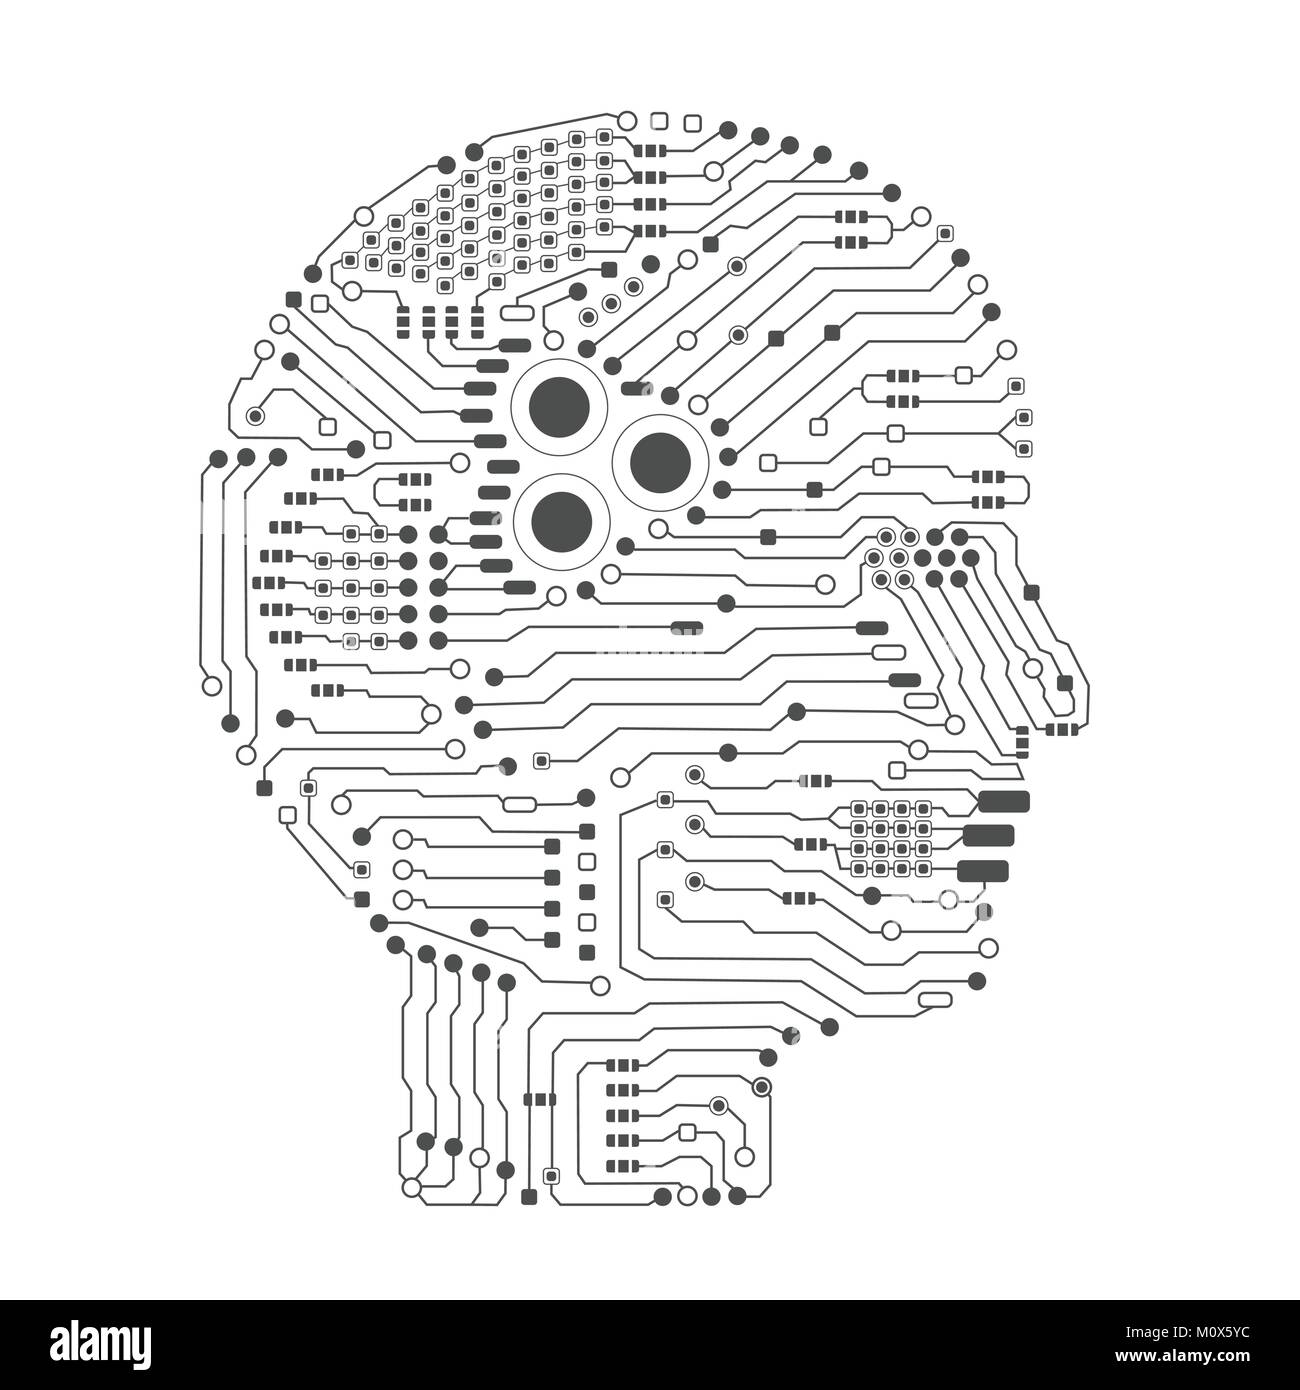 Side Vector Circboard Wiring Diagram Detailed Diagrams Circuit Board Artificial Intelligence Brain Or In Head Shape Carrier Transicold